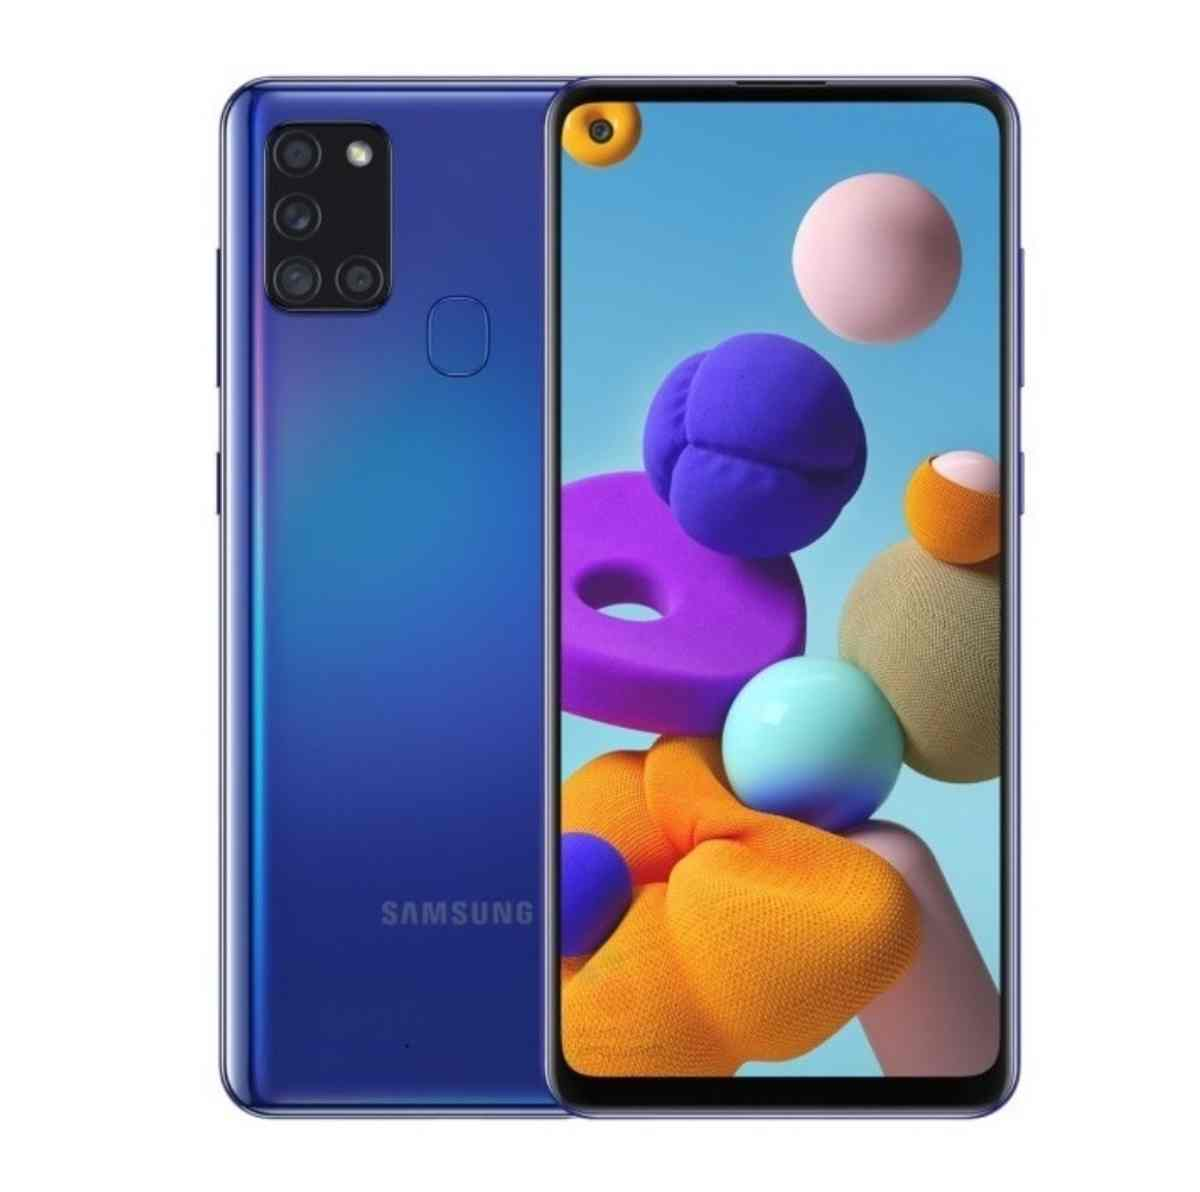 Samsung Galaxy A21s, Samsung galaxy a21s price in Nigeria, price of samsung galaxy a21s in Nigeria, how much is samsung galaxy a21s in Nigeria, Samsung galaxy A21s specs and price in Nigeria, Samsung A21s price, Samsung Galaxy A21s specs, Galaxy A21s price in Nigeria, Samsung galaxy A21s specification, Samsung Galaxy A21s and price in Nigeria, specs and price of Samsung A21s